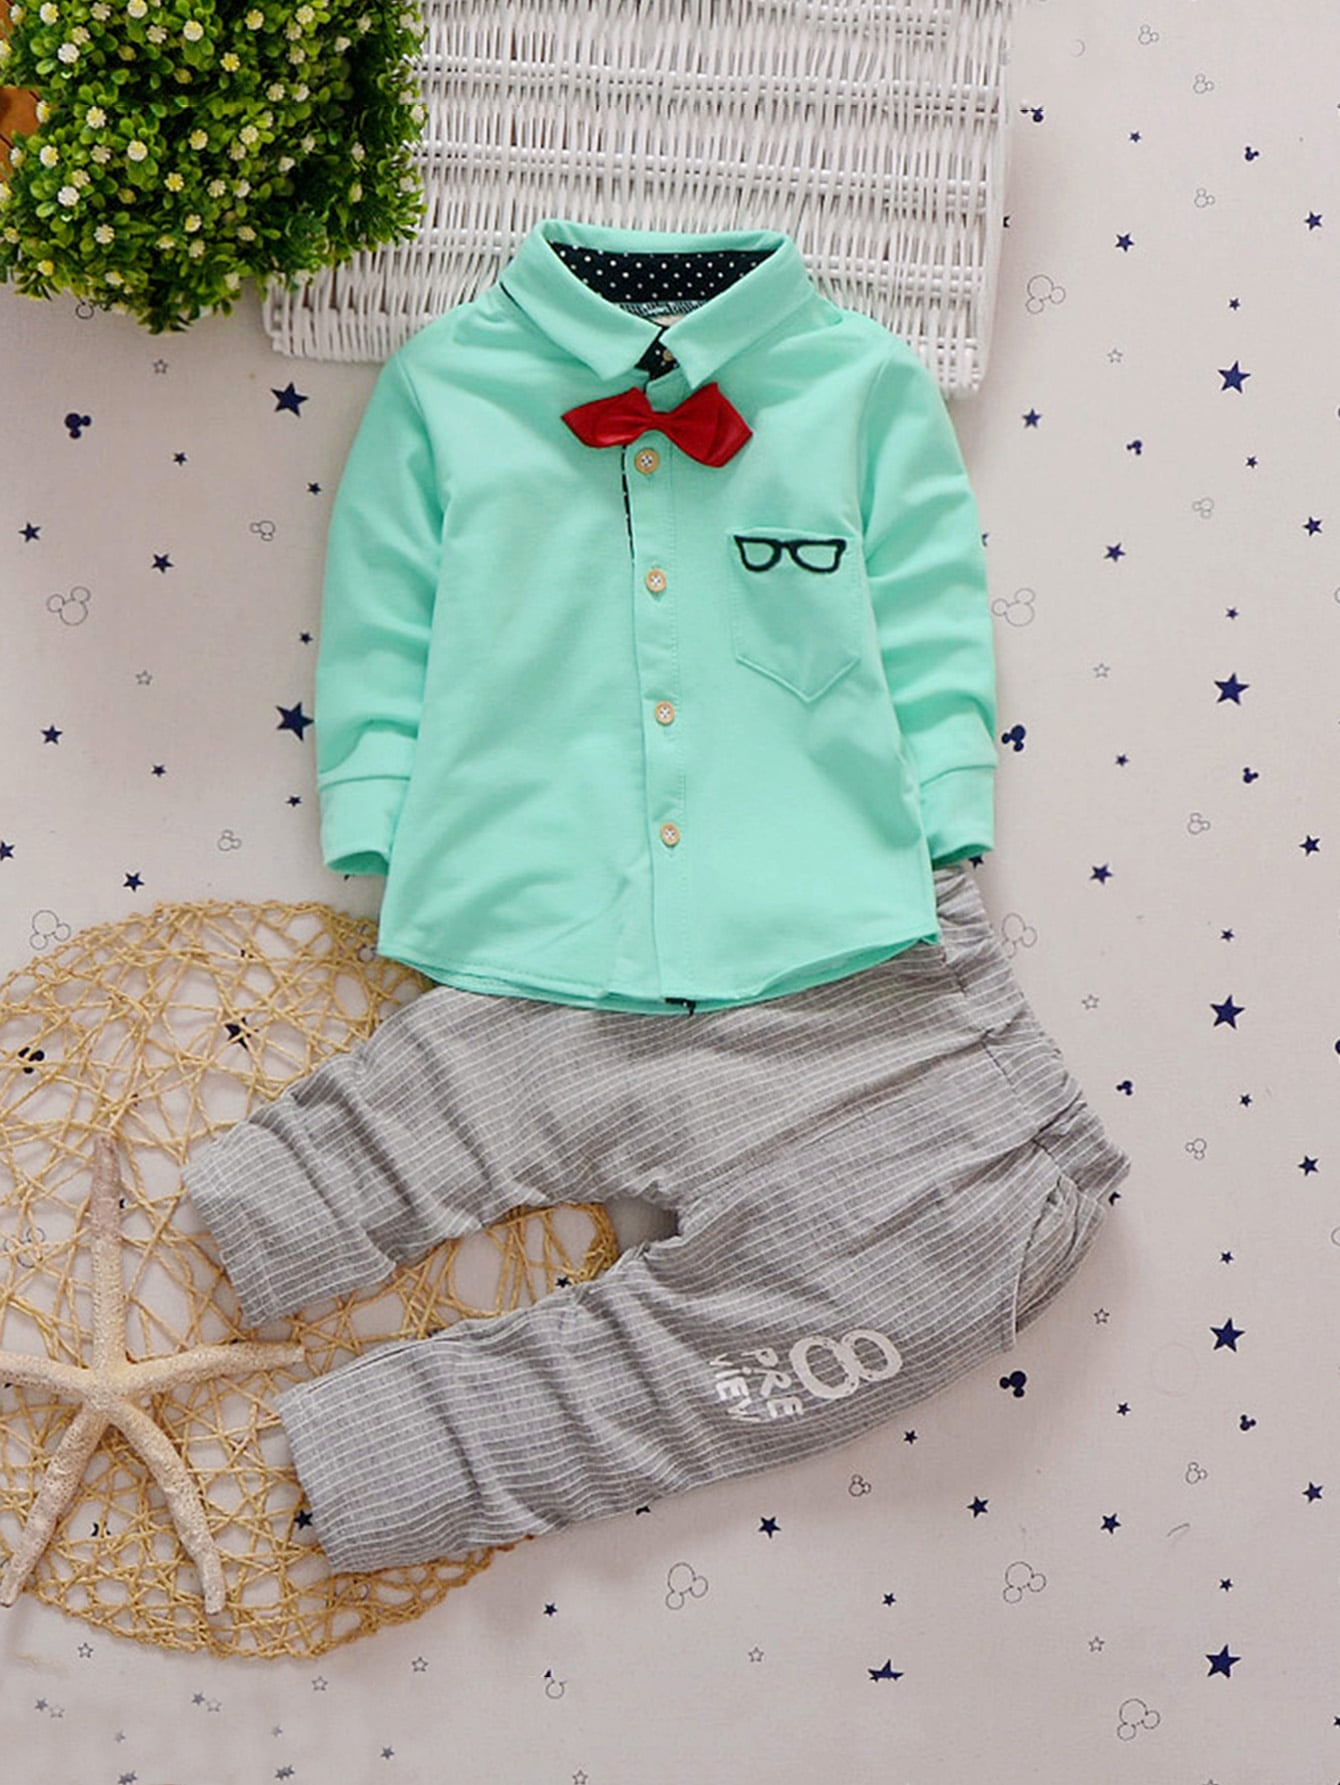 Toddler Boys Bow Detail Curved Hem Shirt With Striped Pants Toddler Boys Bow Detail Curved Hem Shirt With Striped Pants